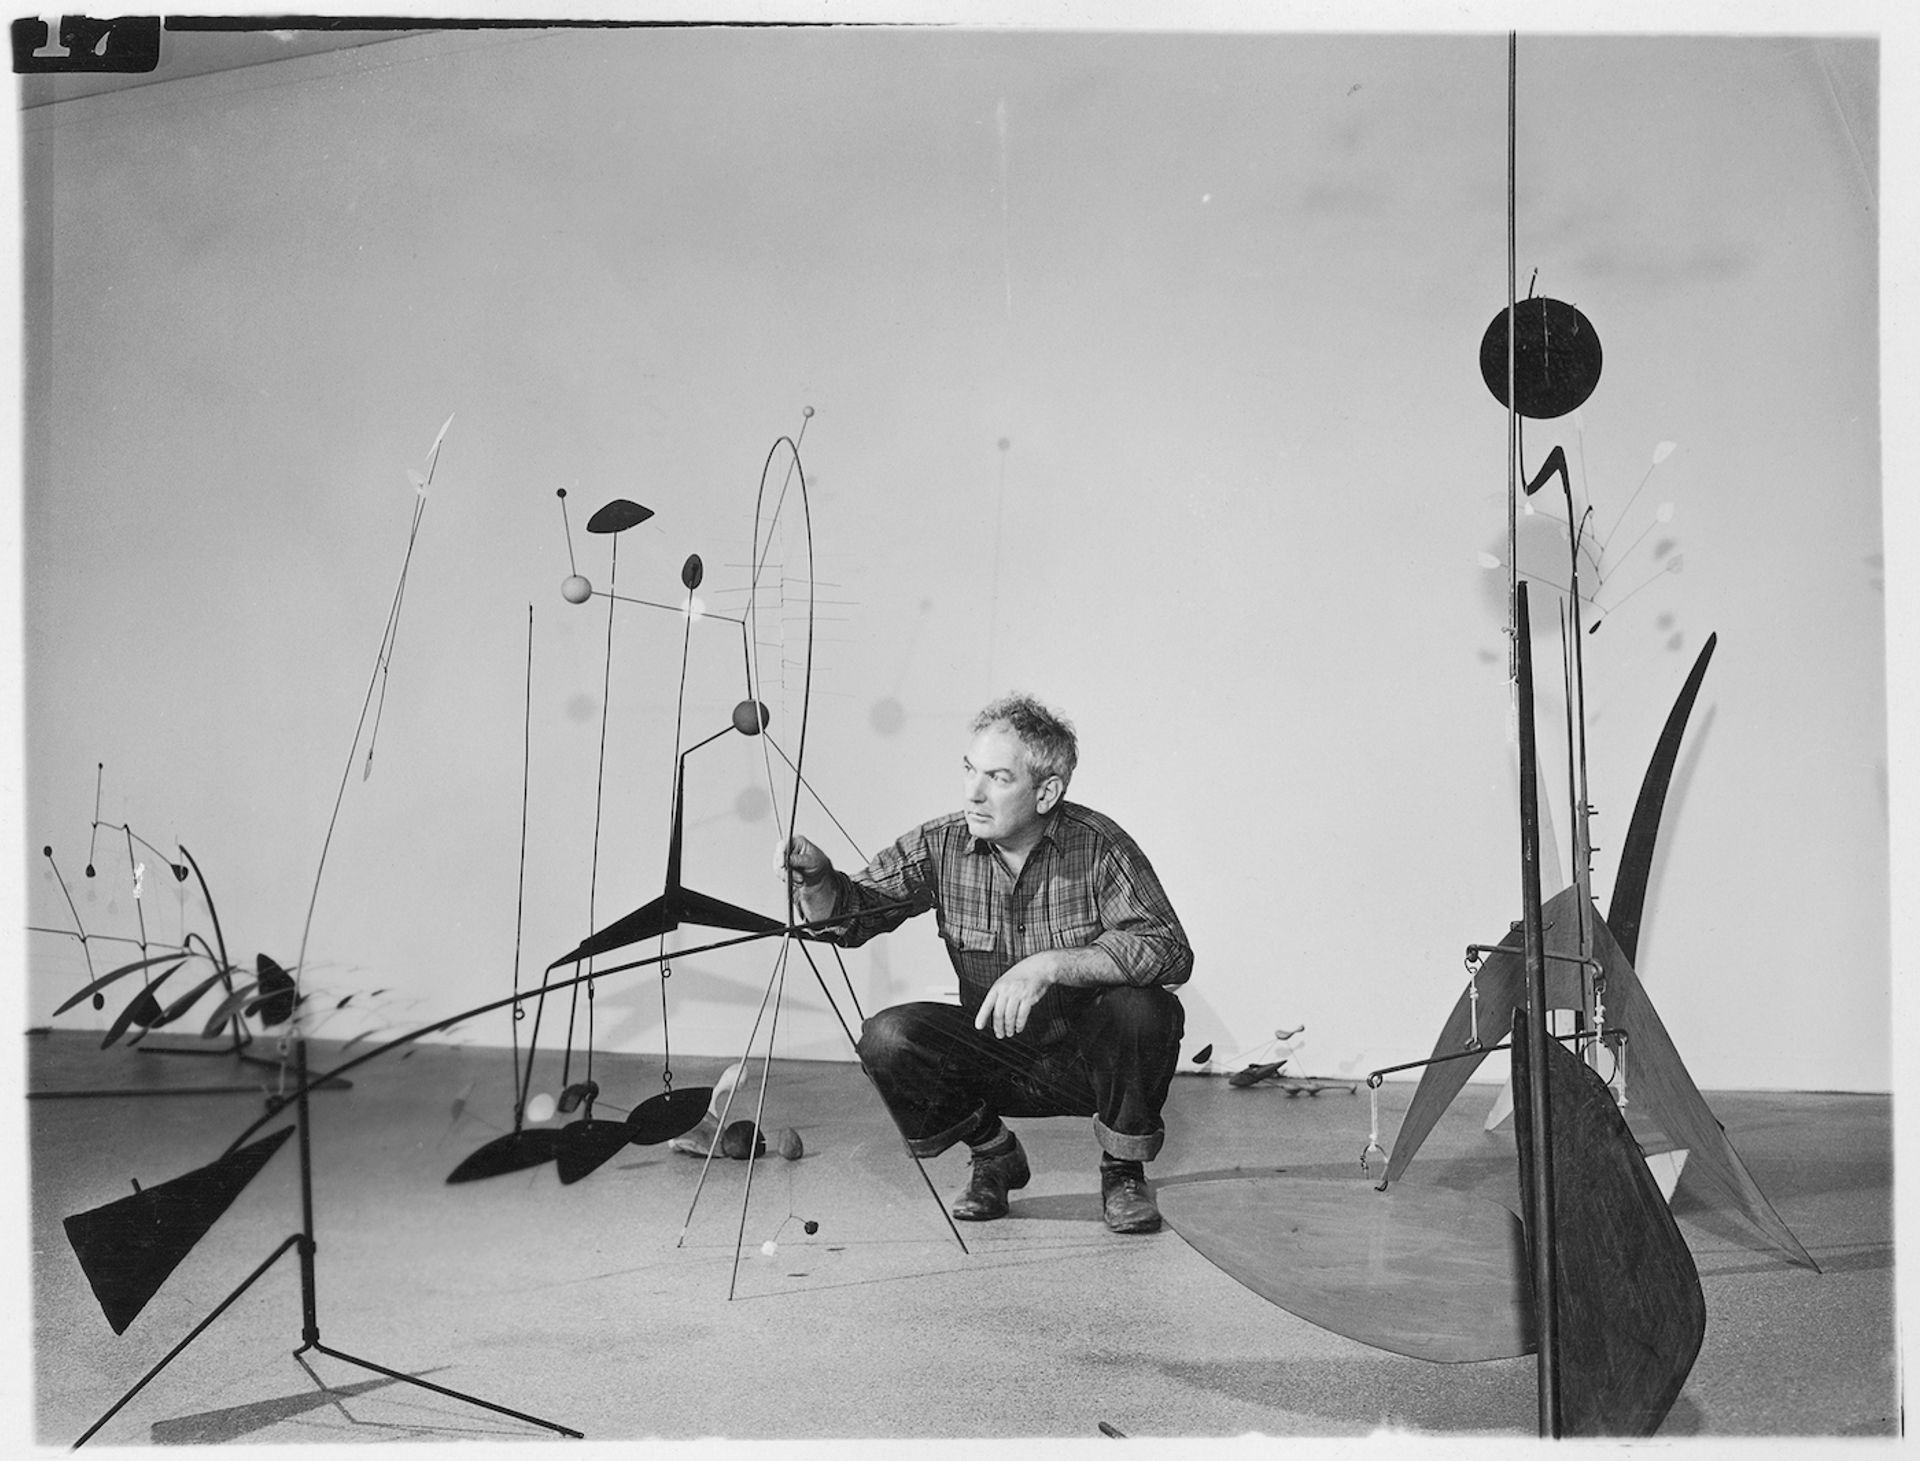 """Publicity photograph of Calder during the installation of """"Alexander Calder"""" in 1943 at the Museum of Modern Art Photographic Archive, The Museum of Modern Art Archives, New York. © 2021 Calder Foundation, New York / Artists Rights Society (ARS), New York"""